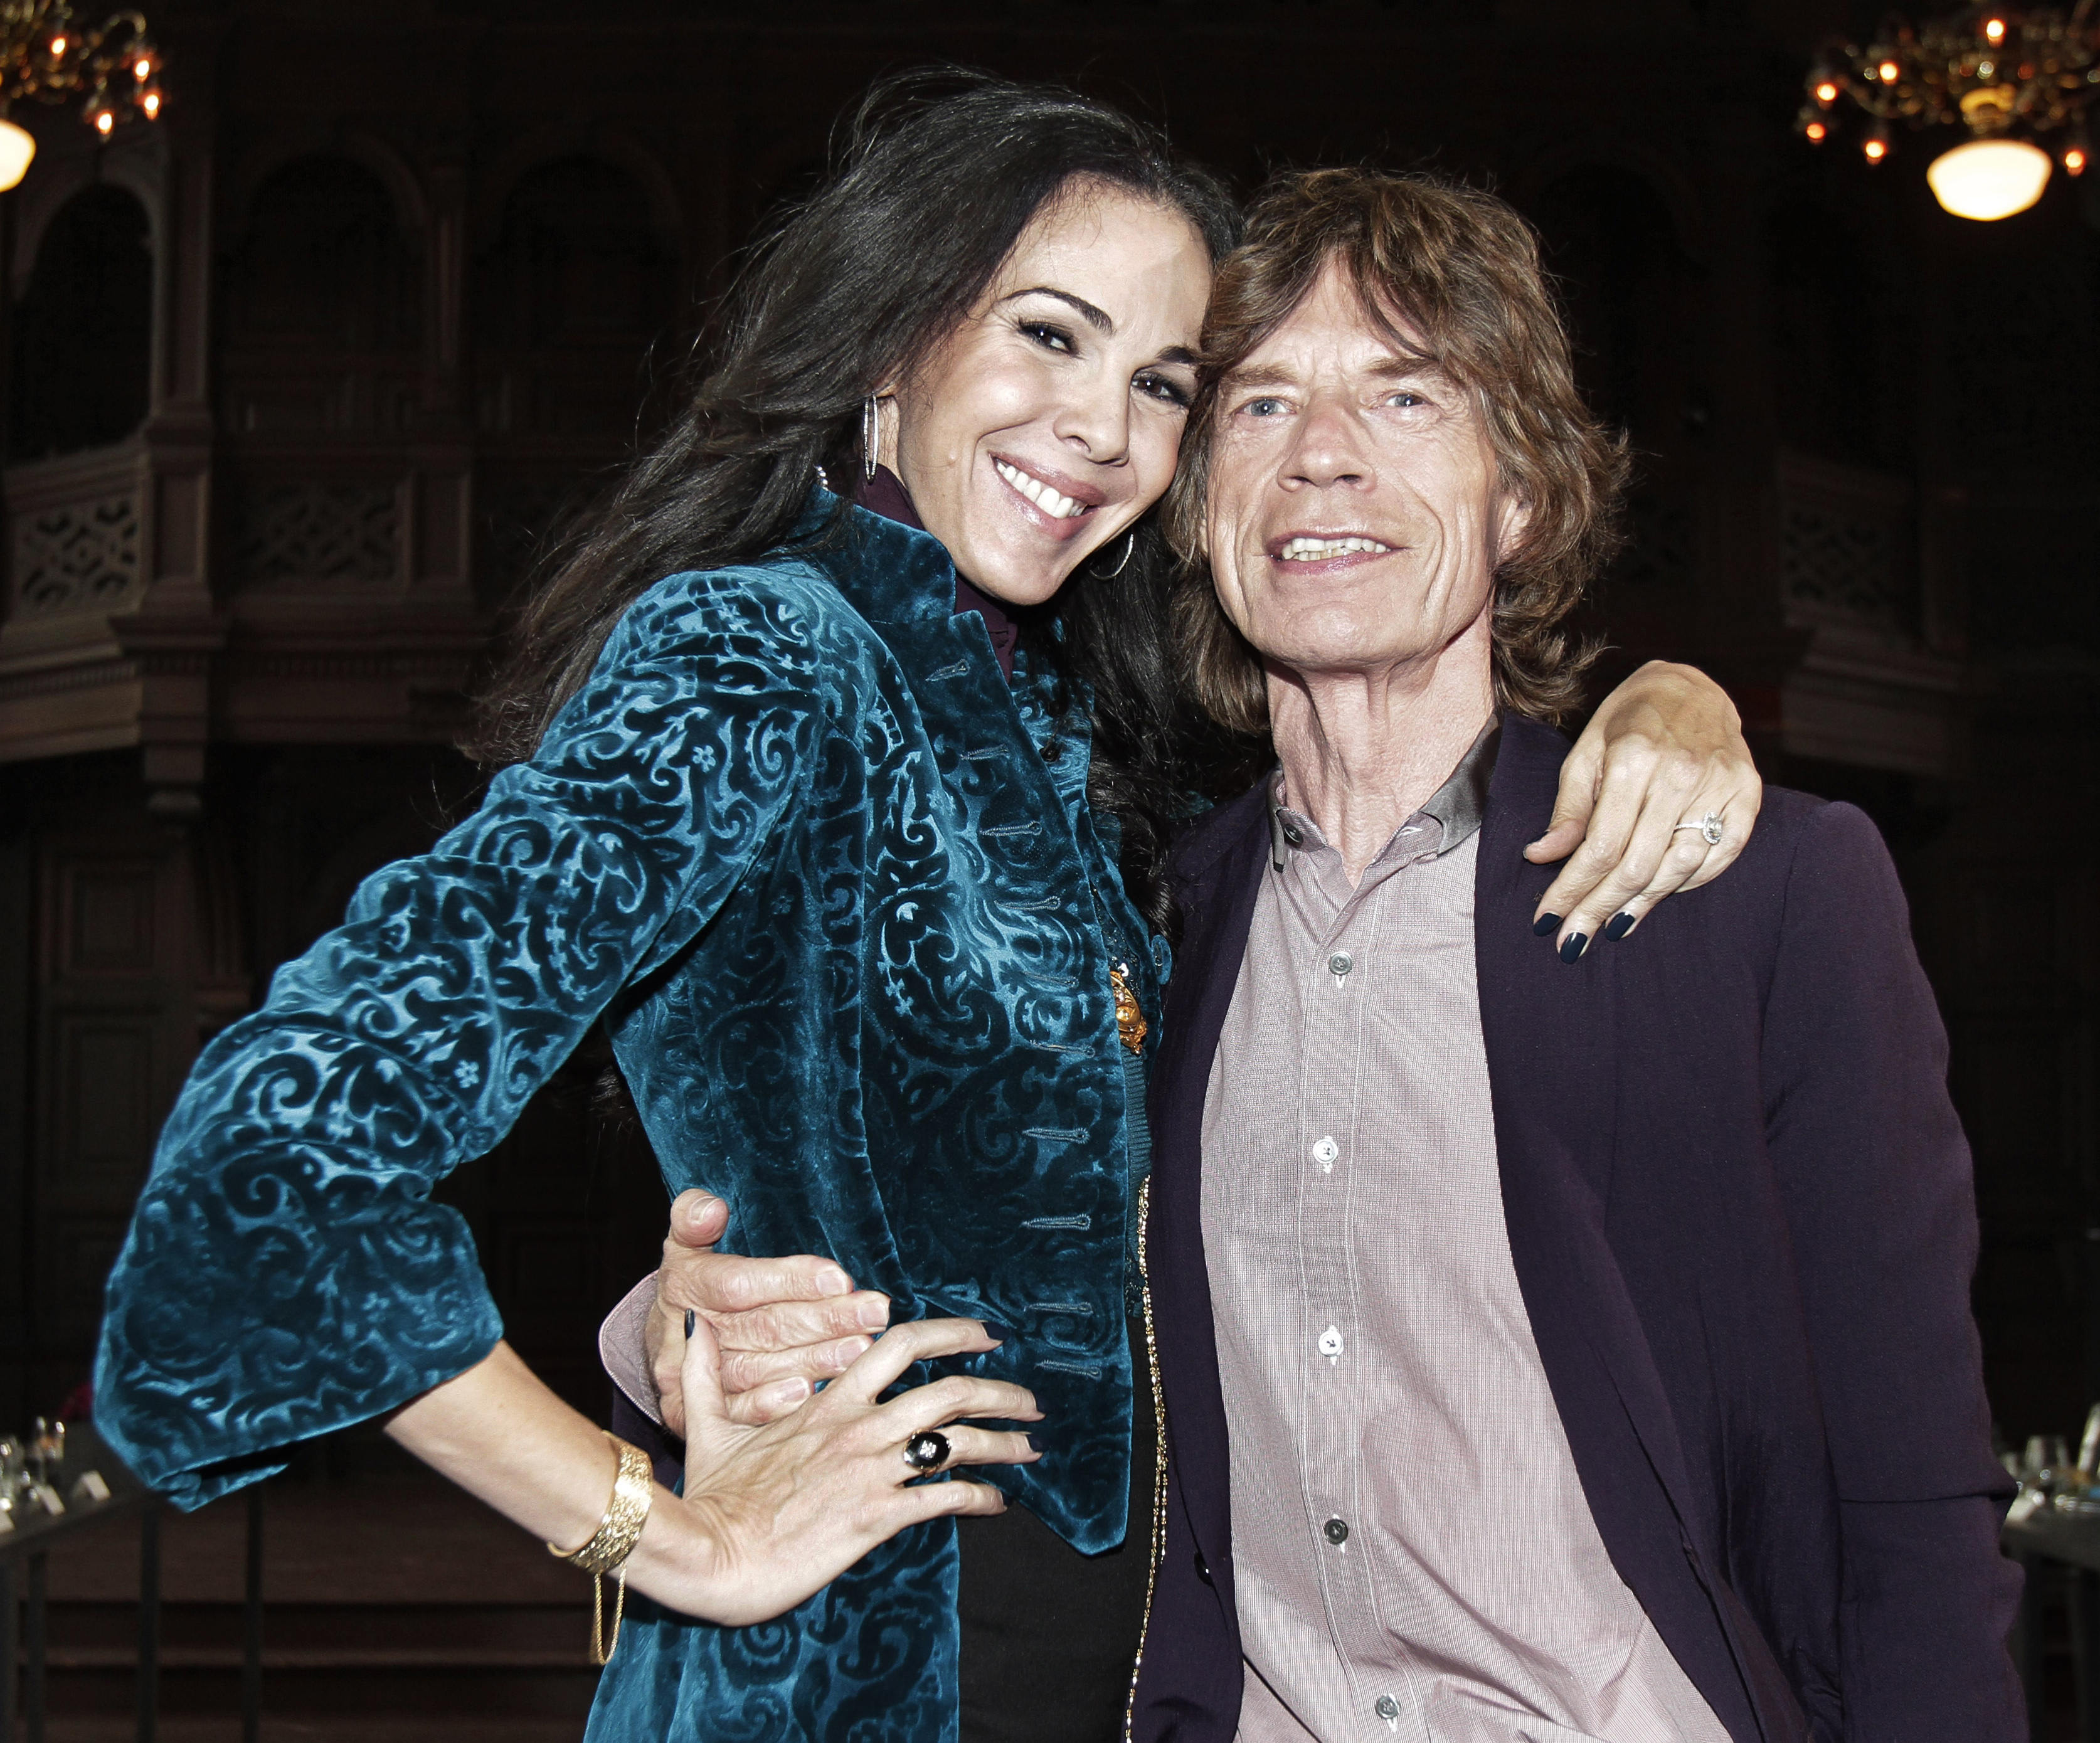 FILE - This Feb. 16, 2012 file photo shows singer Mick Jagger, right, with designer L¿Wren Scott after her Fall 2012 collect